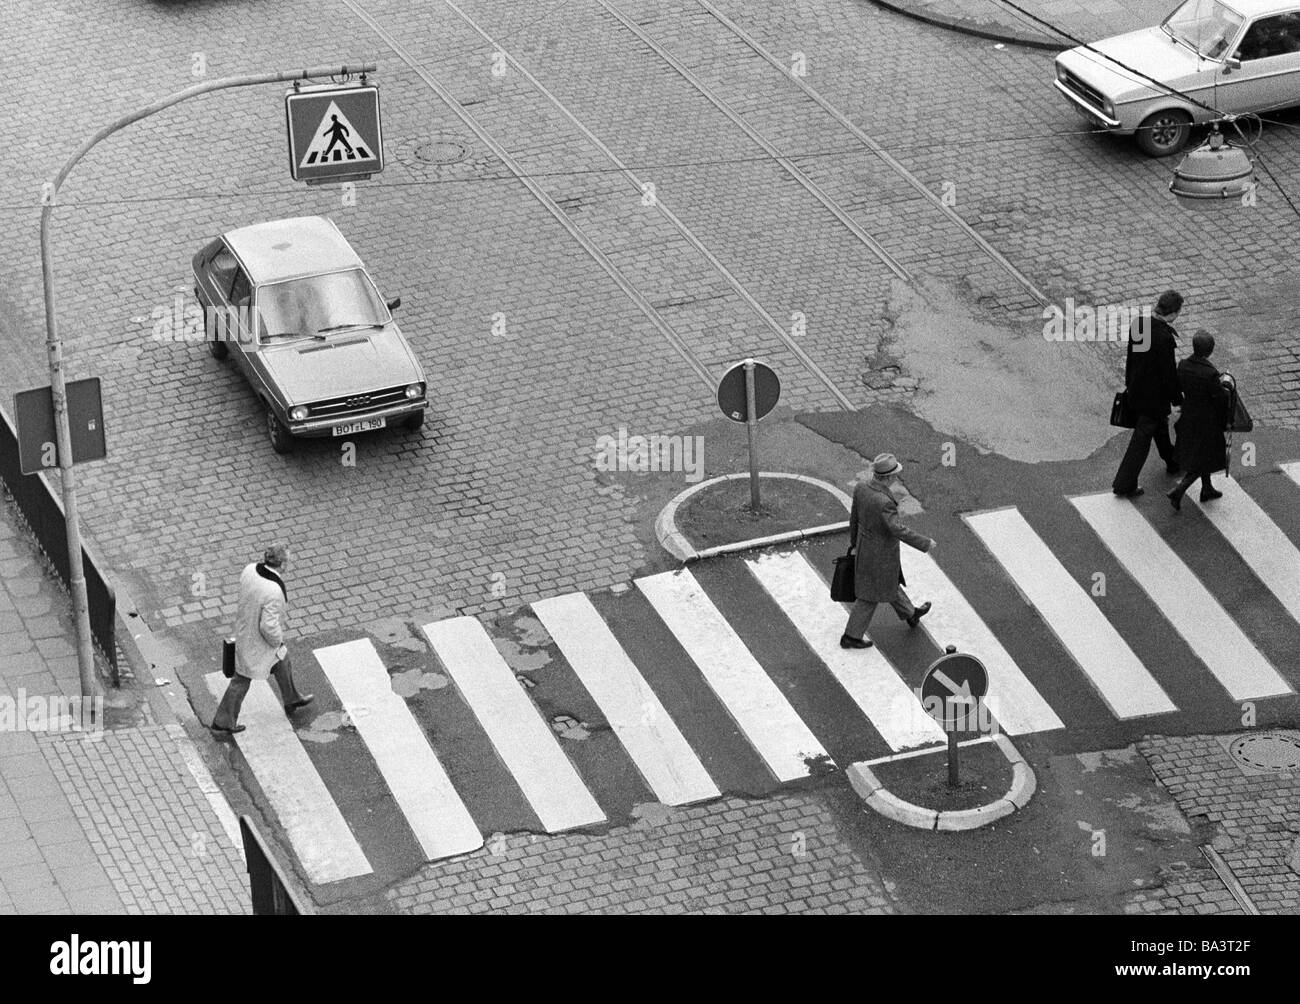 Seventies, black and white photo, road traffic, people cross the street on a cebra crossing, waiting cars, D-Oberhausen, - Stock Image